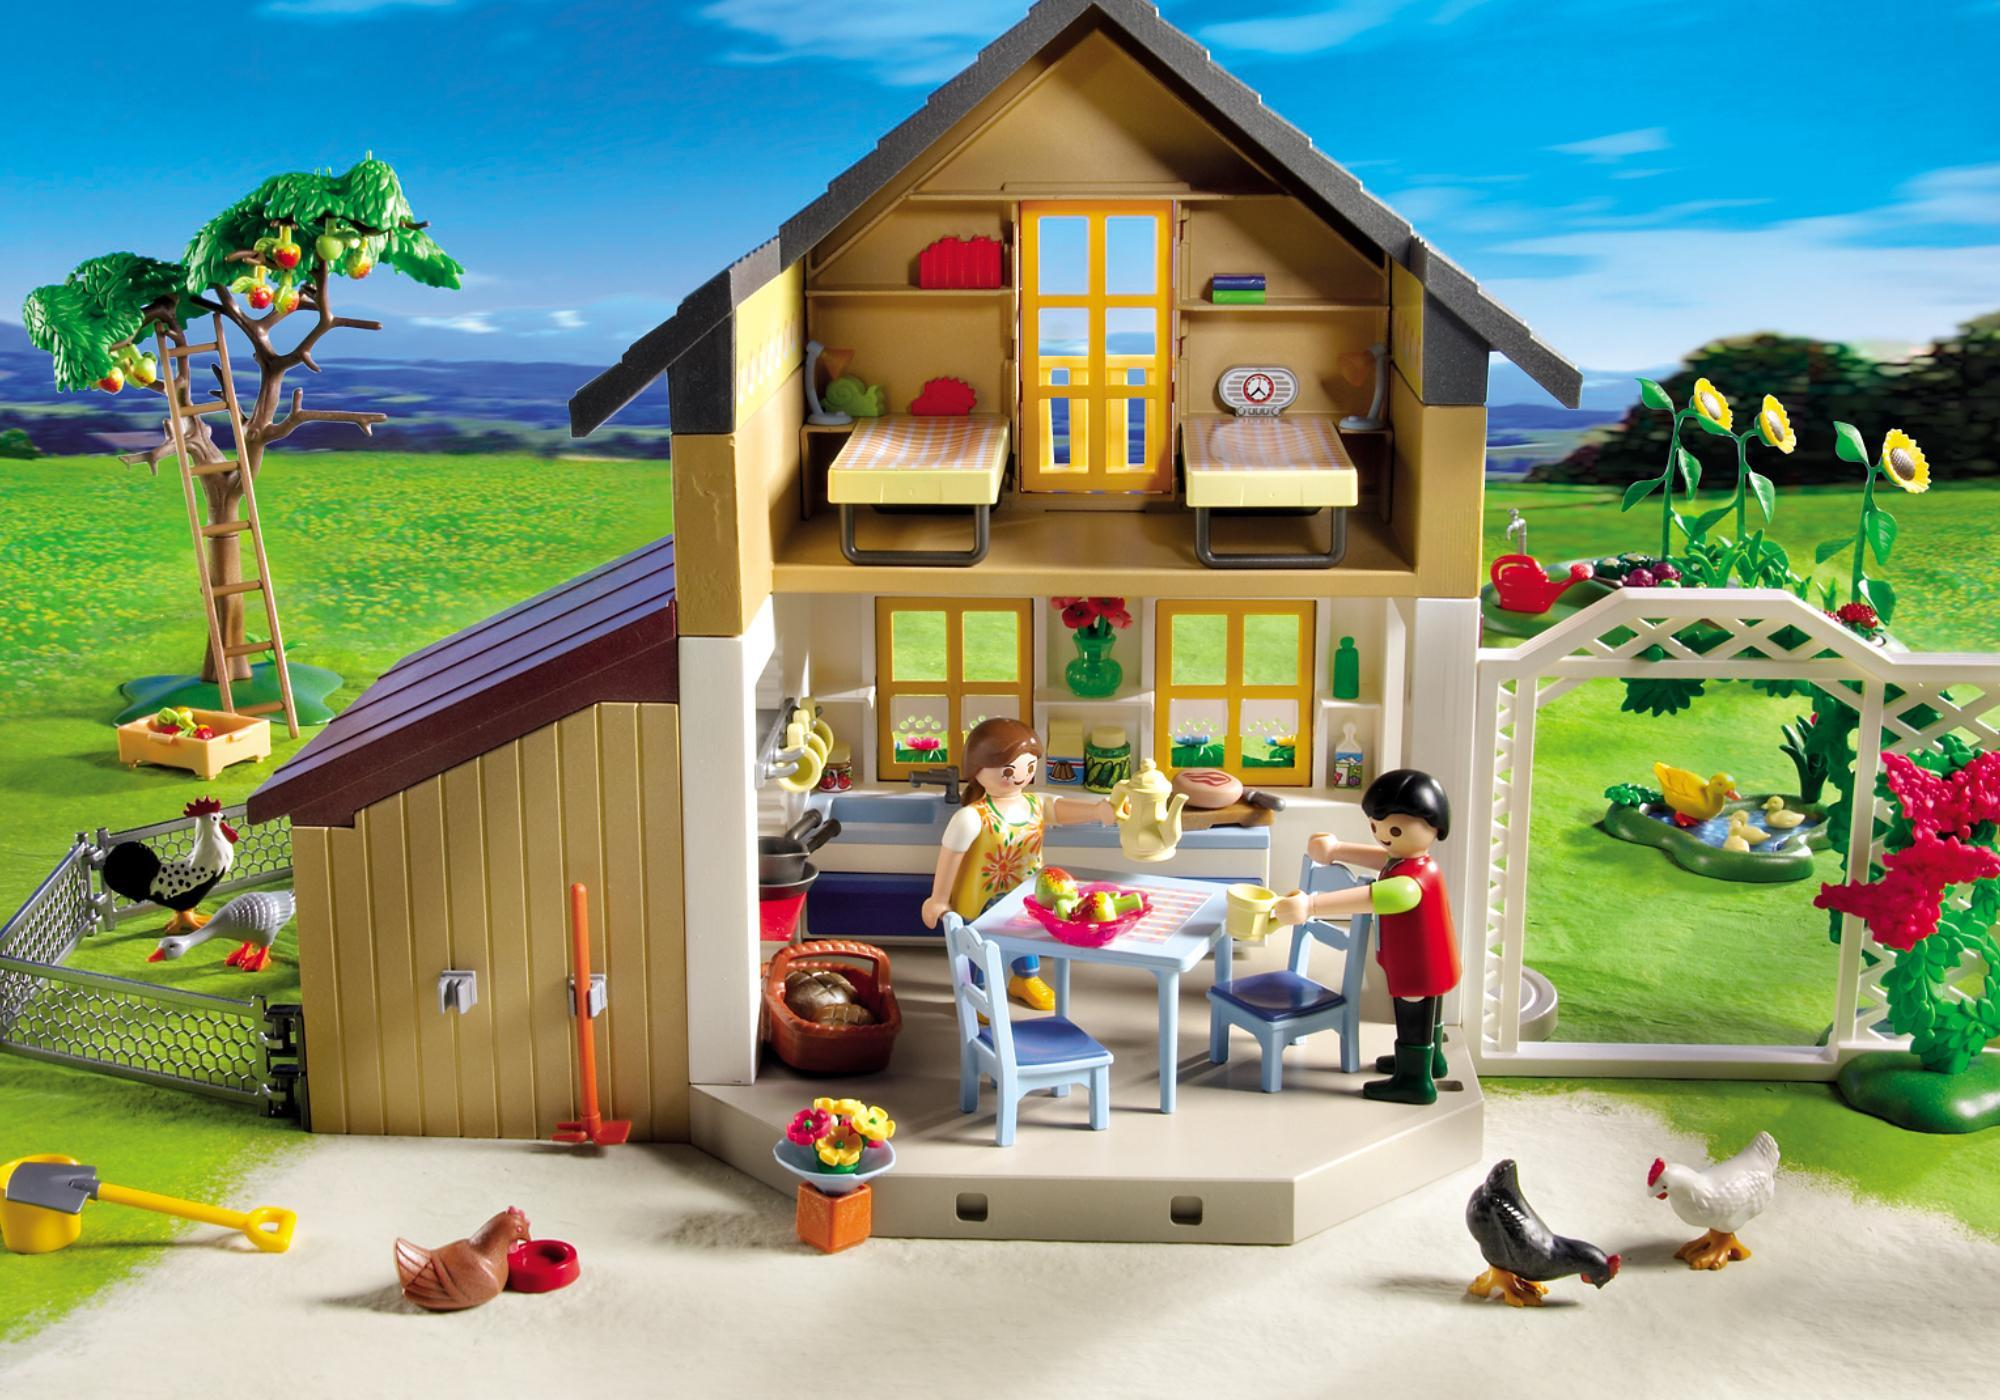 http://media.playmobil.com/i/playmobil/5120_product_extra3